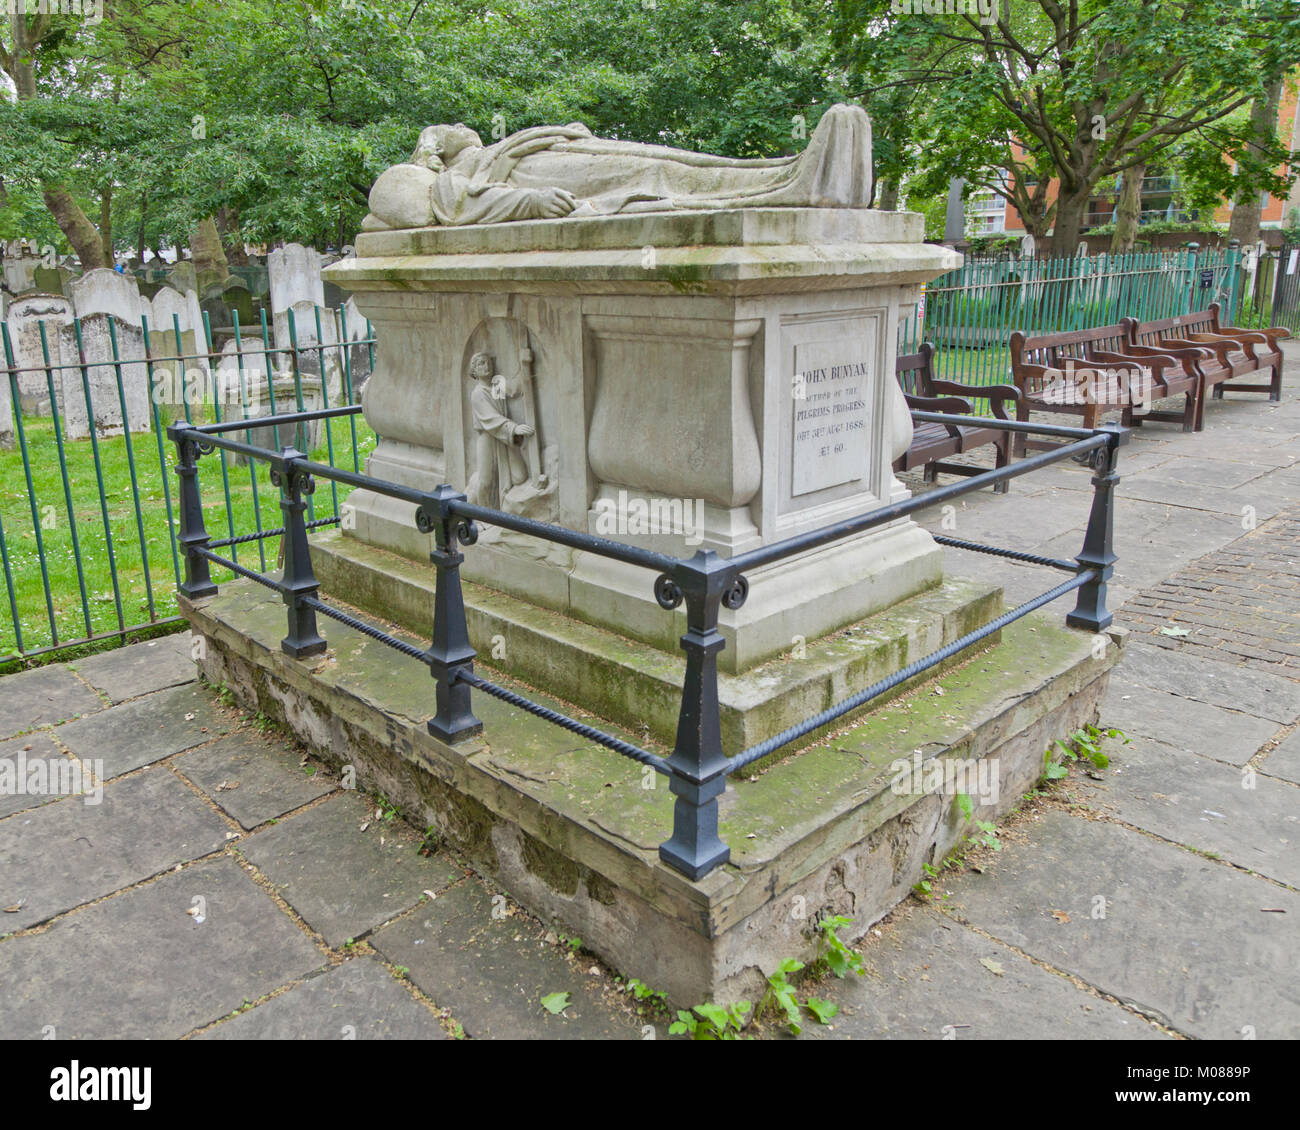 John Bunyan's tomb in Bunhill Fields, a fomer burial ground, in Islington, North London,  UK - Stock Image